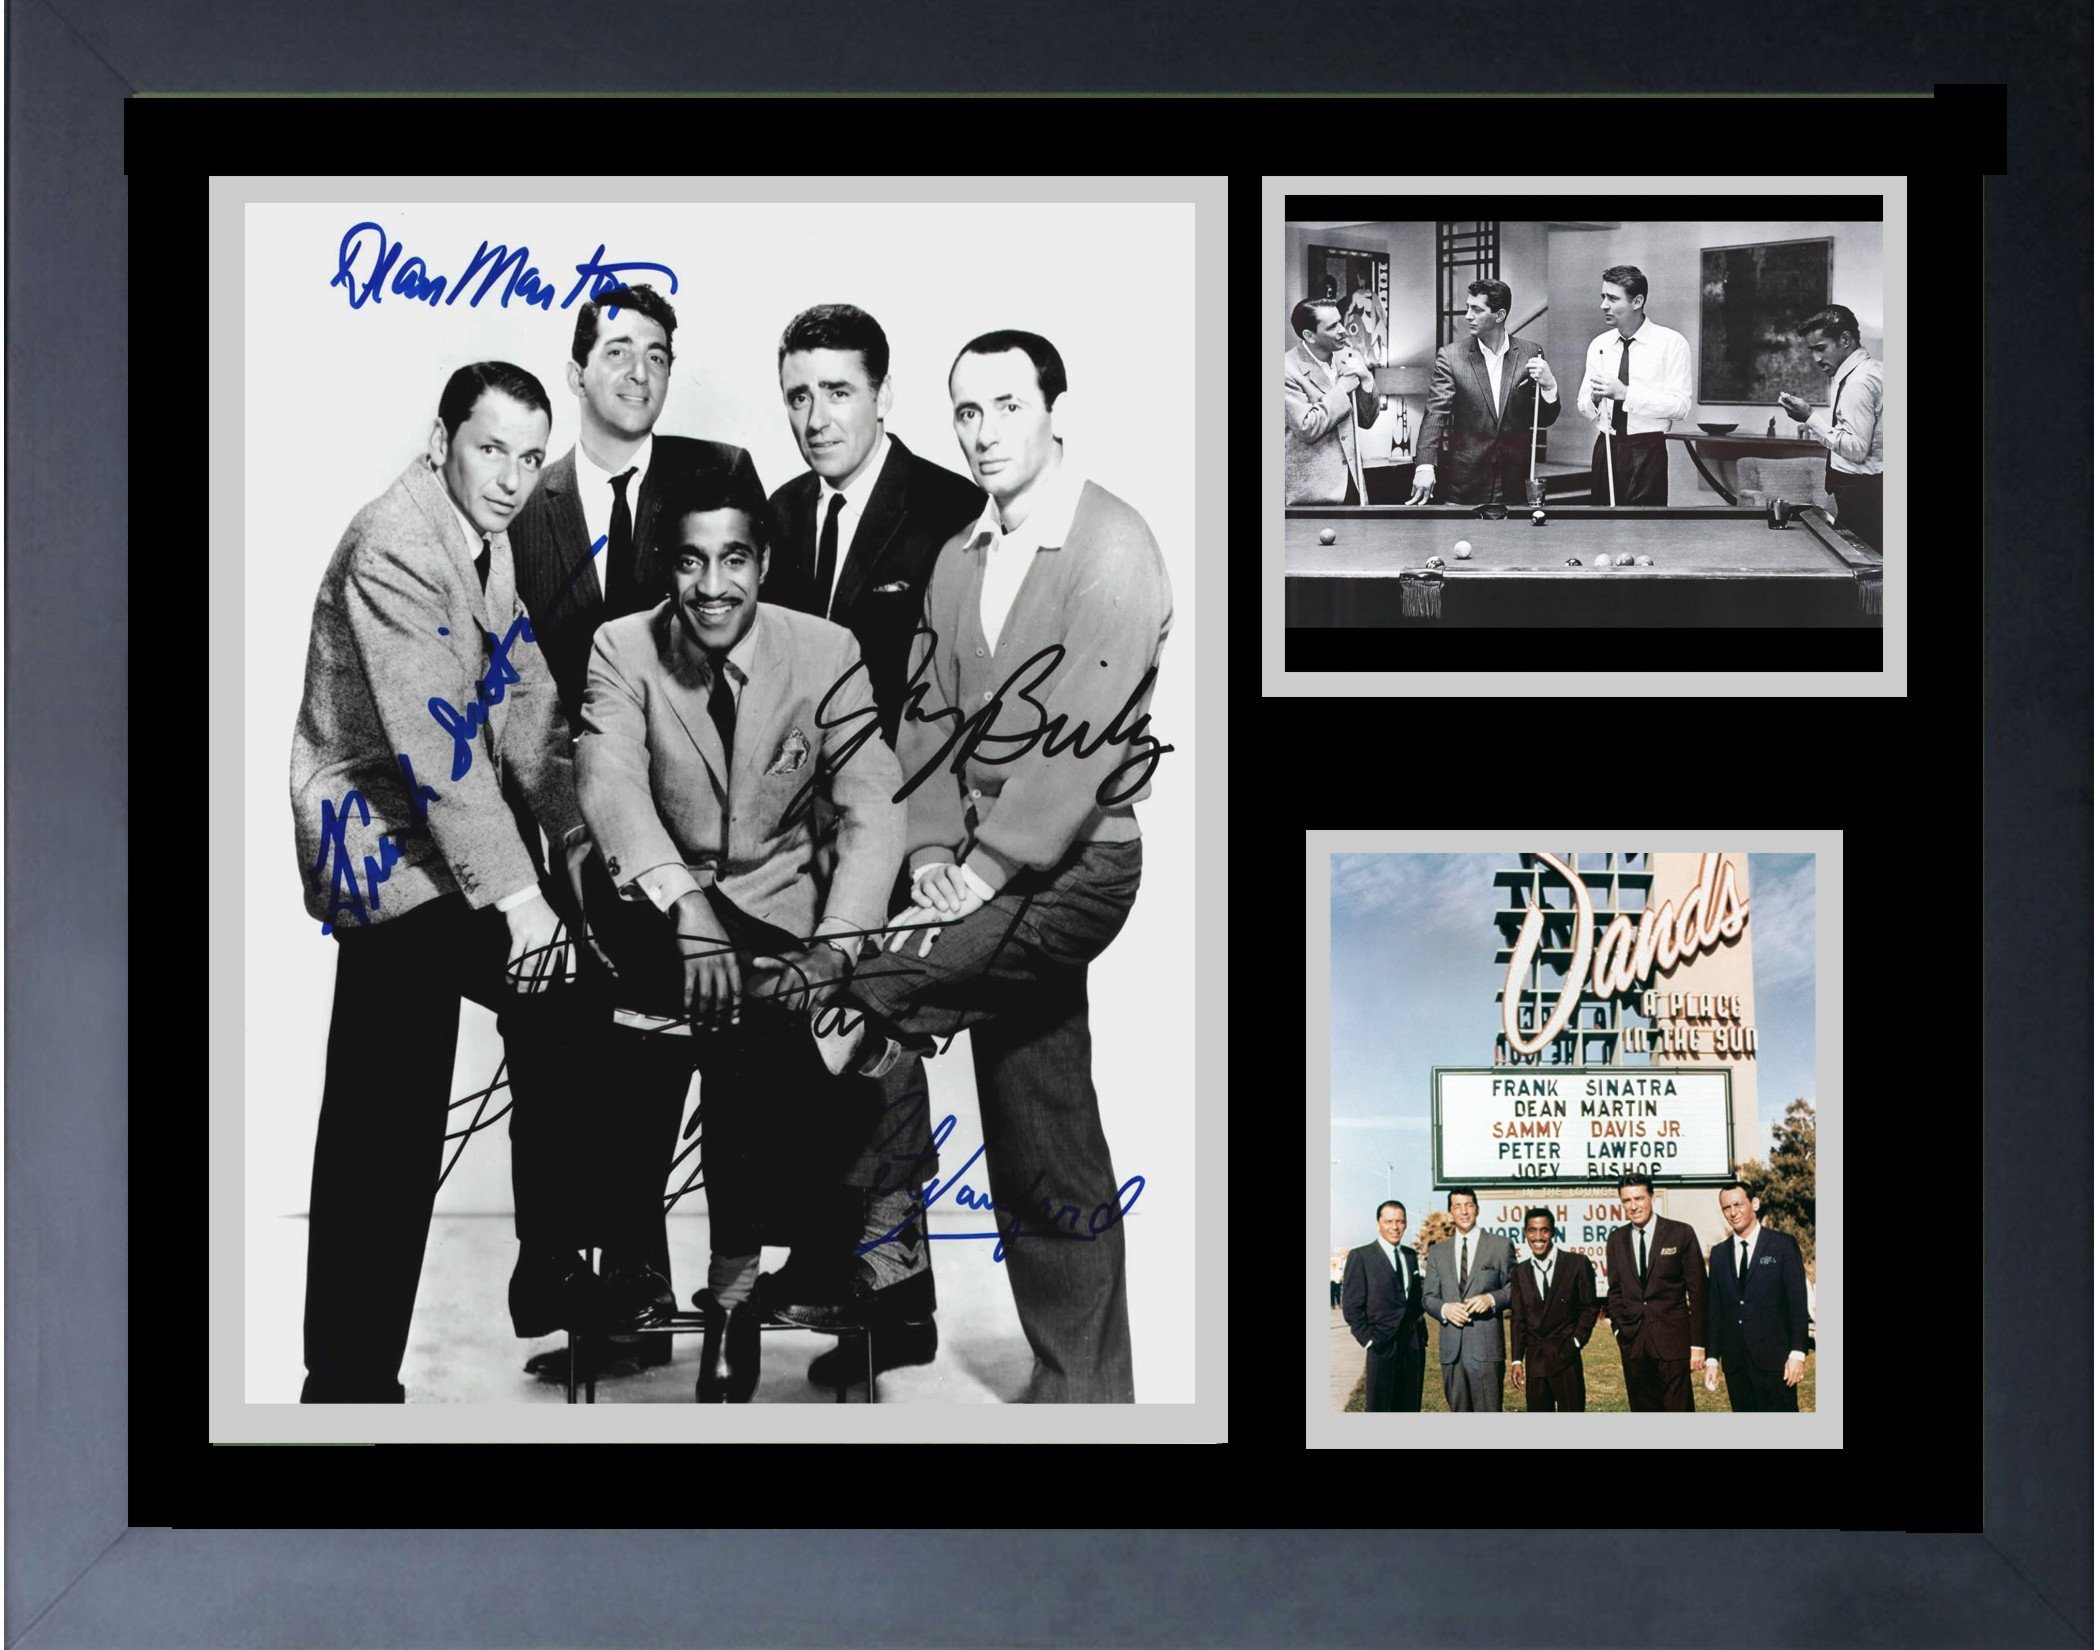 The Rat Pack And The Sands Hotel Las Vegas Frank Sinatra Sammy Davis Jr. DEAN Martin Framed Print 14 x 17